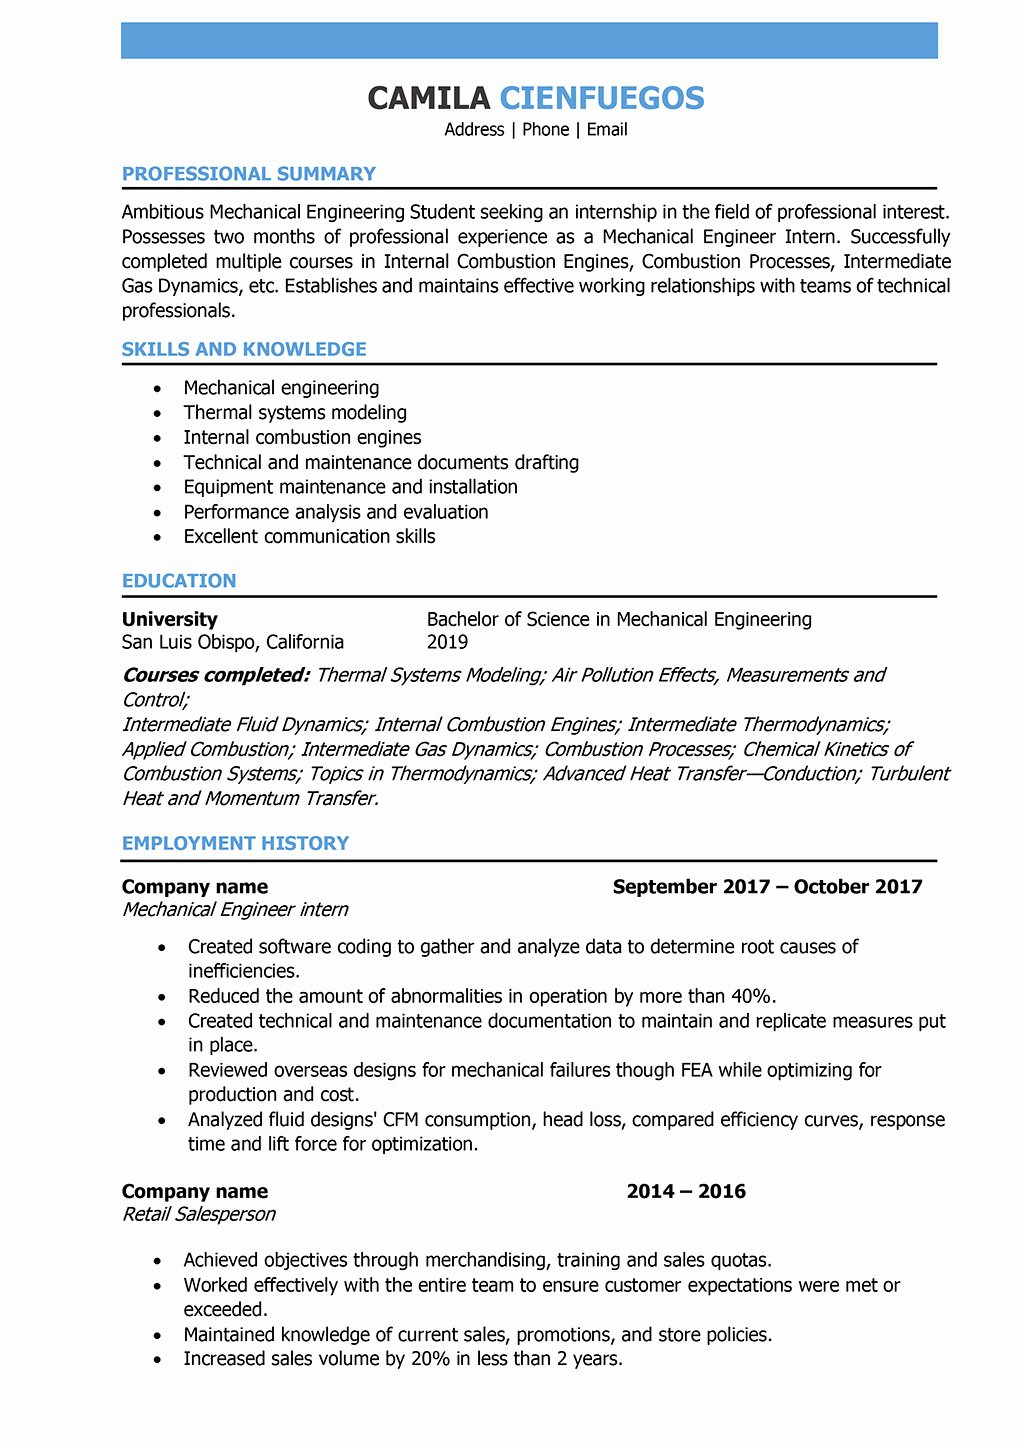 Mechanical Engineer Resume Sample Awesome Mechanical Engineer Resume Samples and Writing Guide